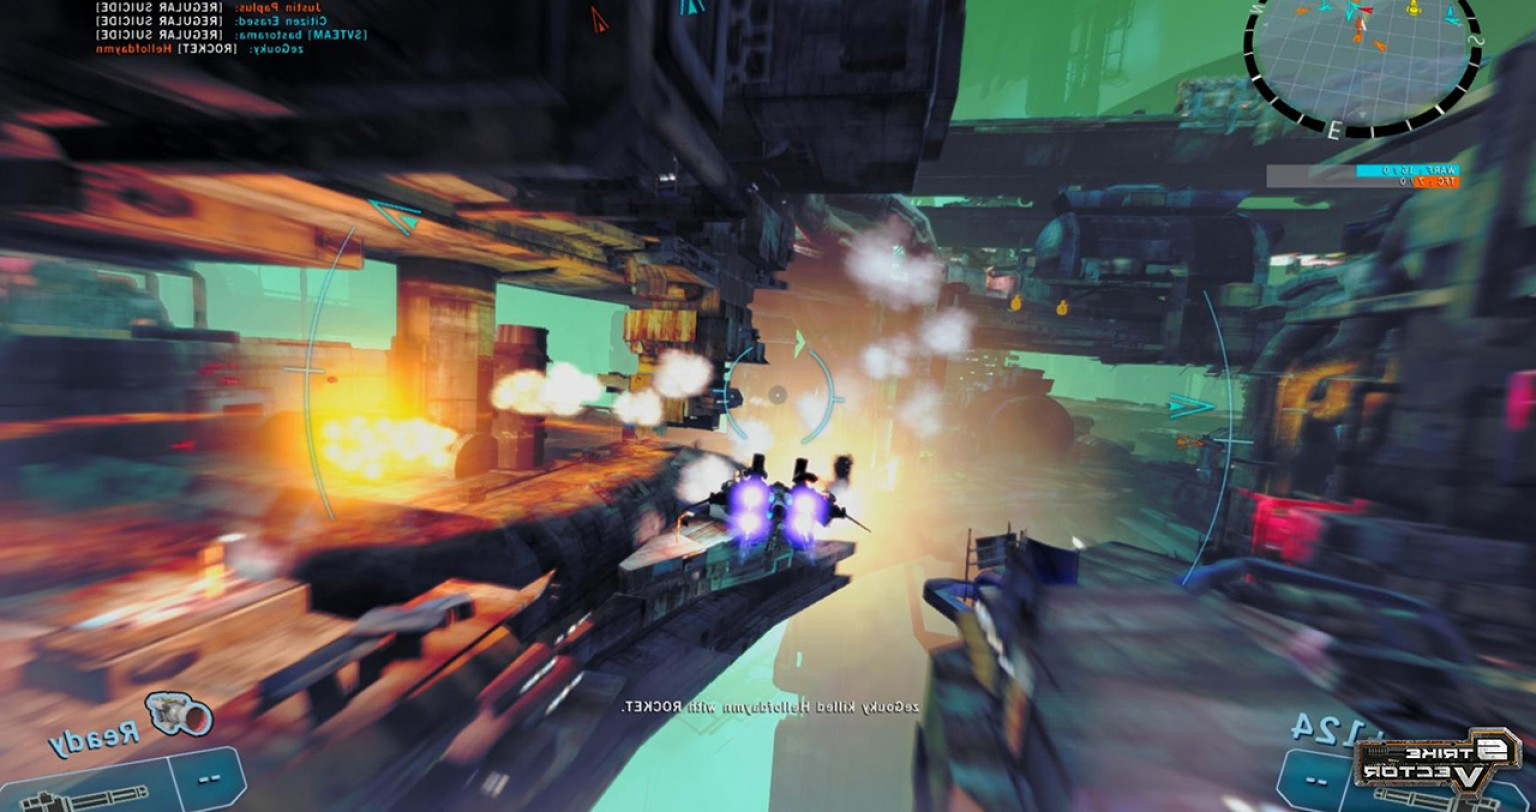 Strike Vector PC: Strike Vector Ex Trailer Shows New Console Additions